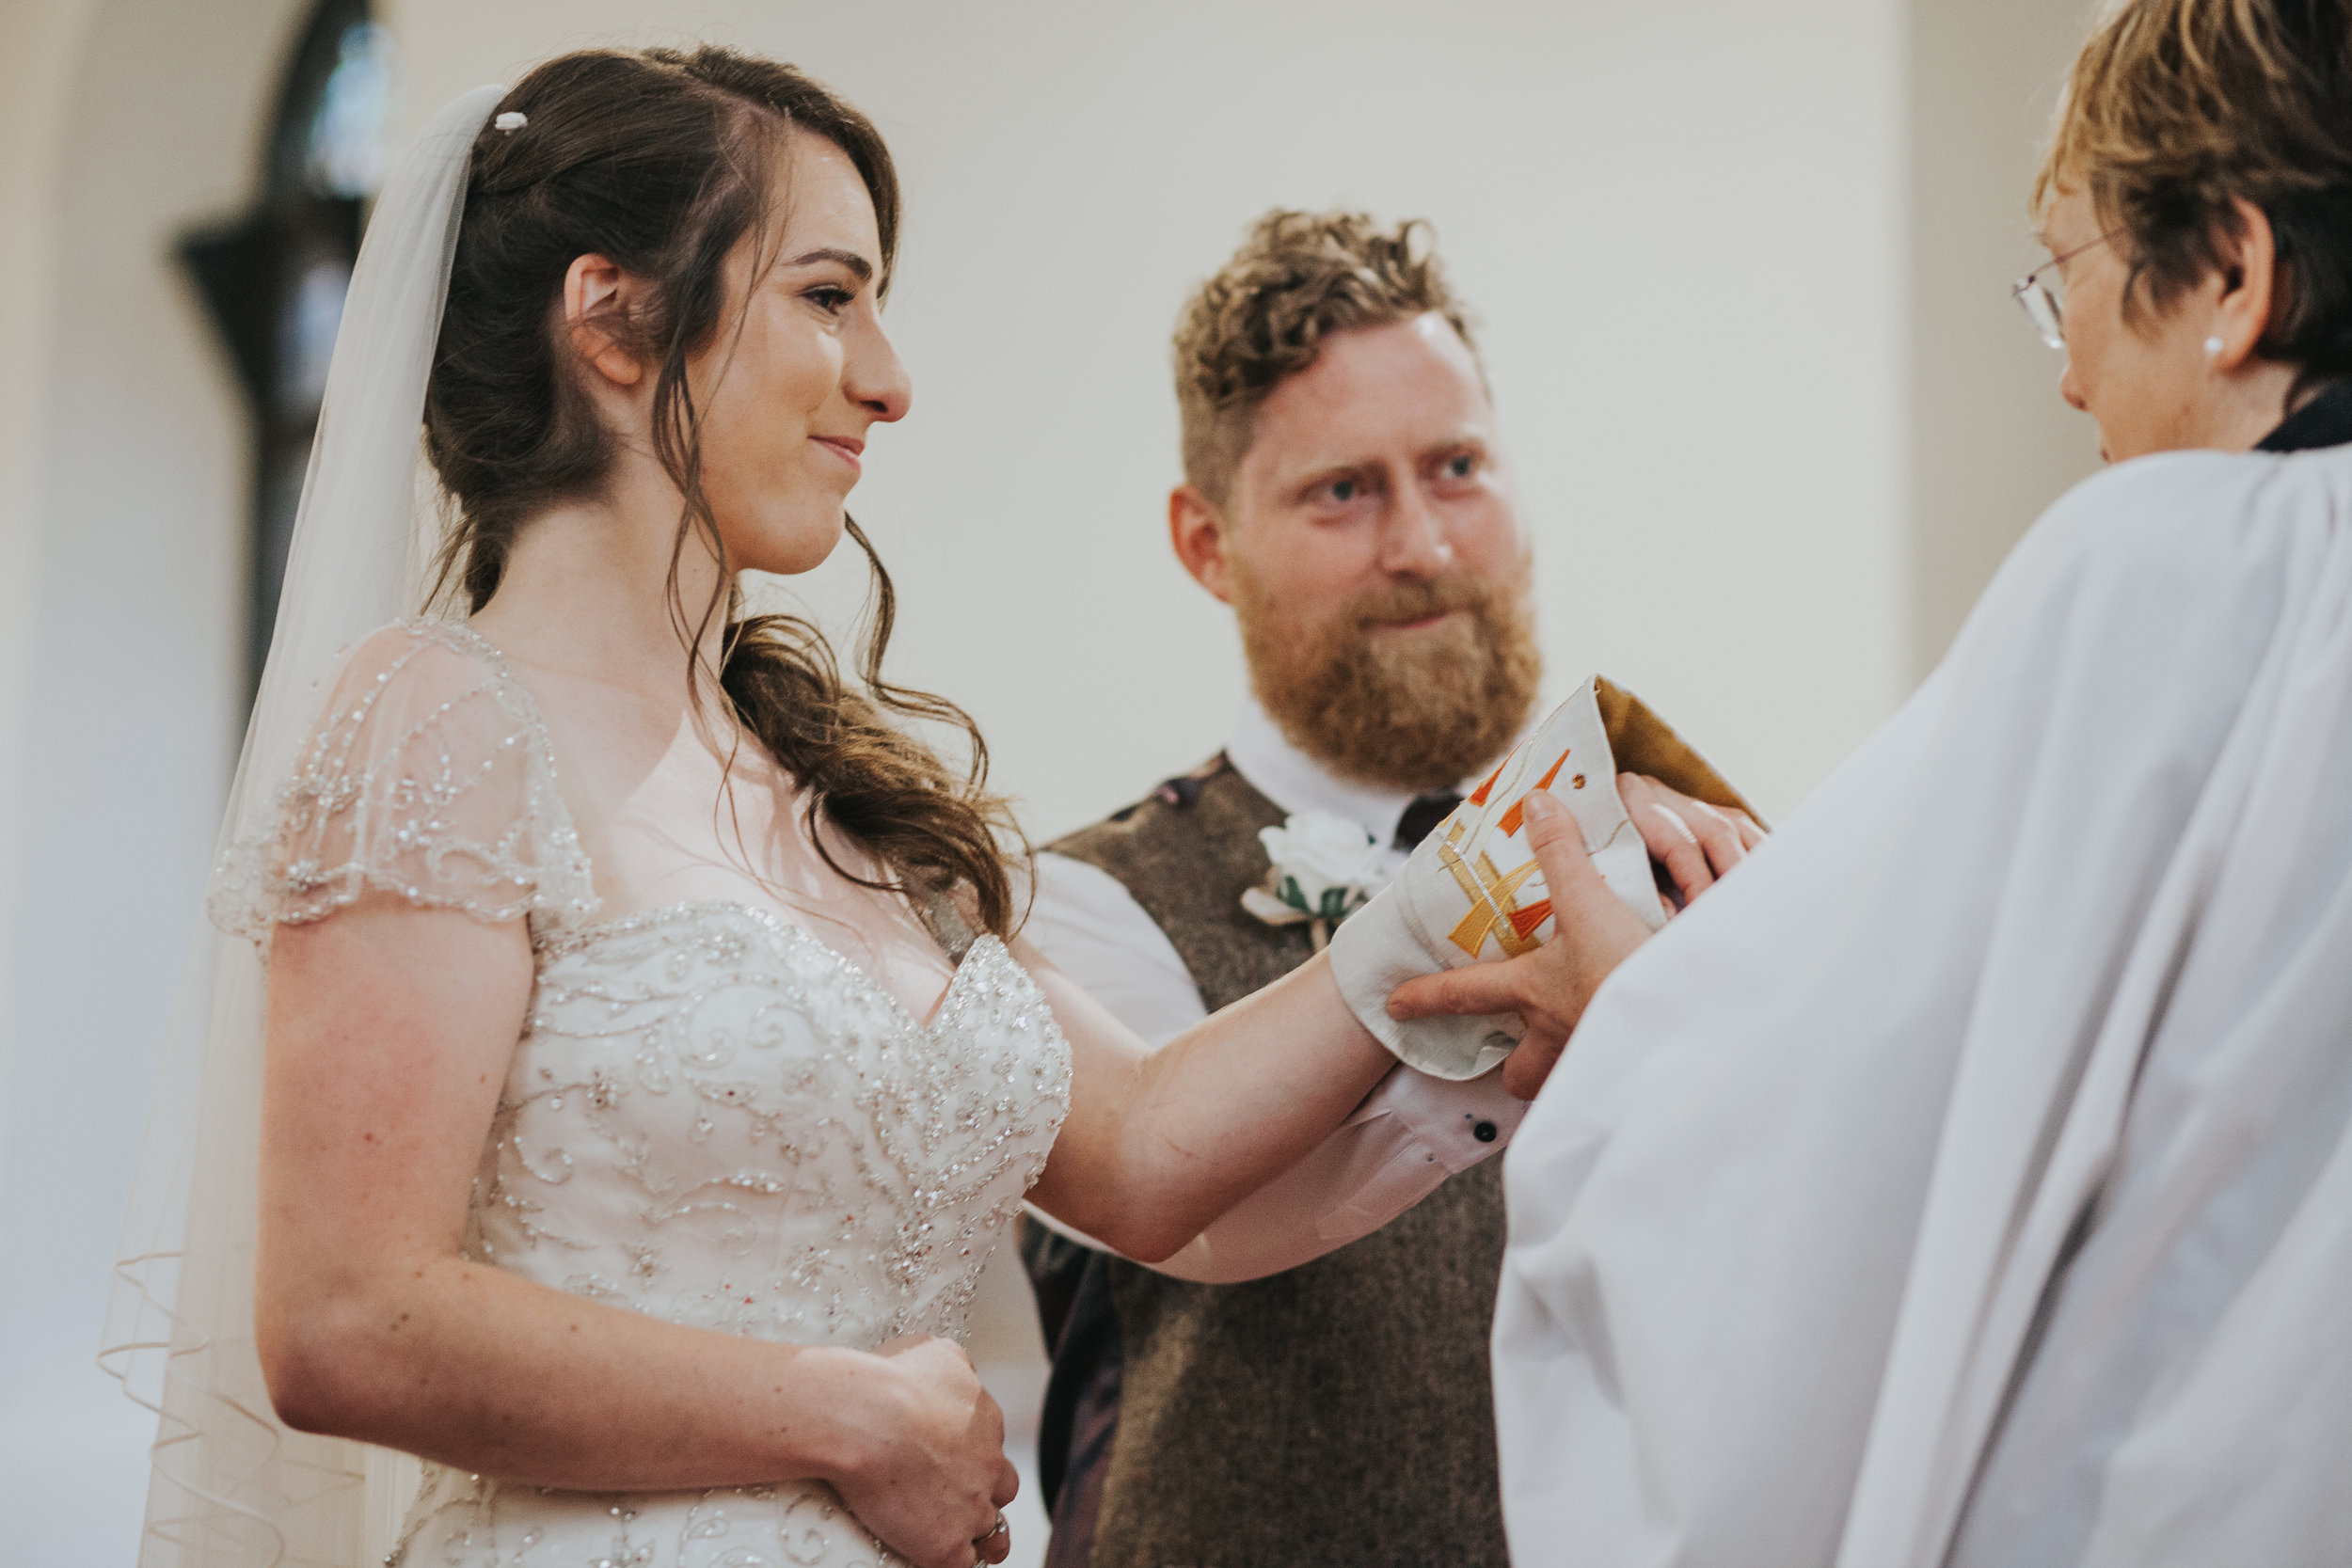 Vicar wraps couples hands in fabric.